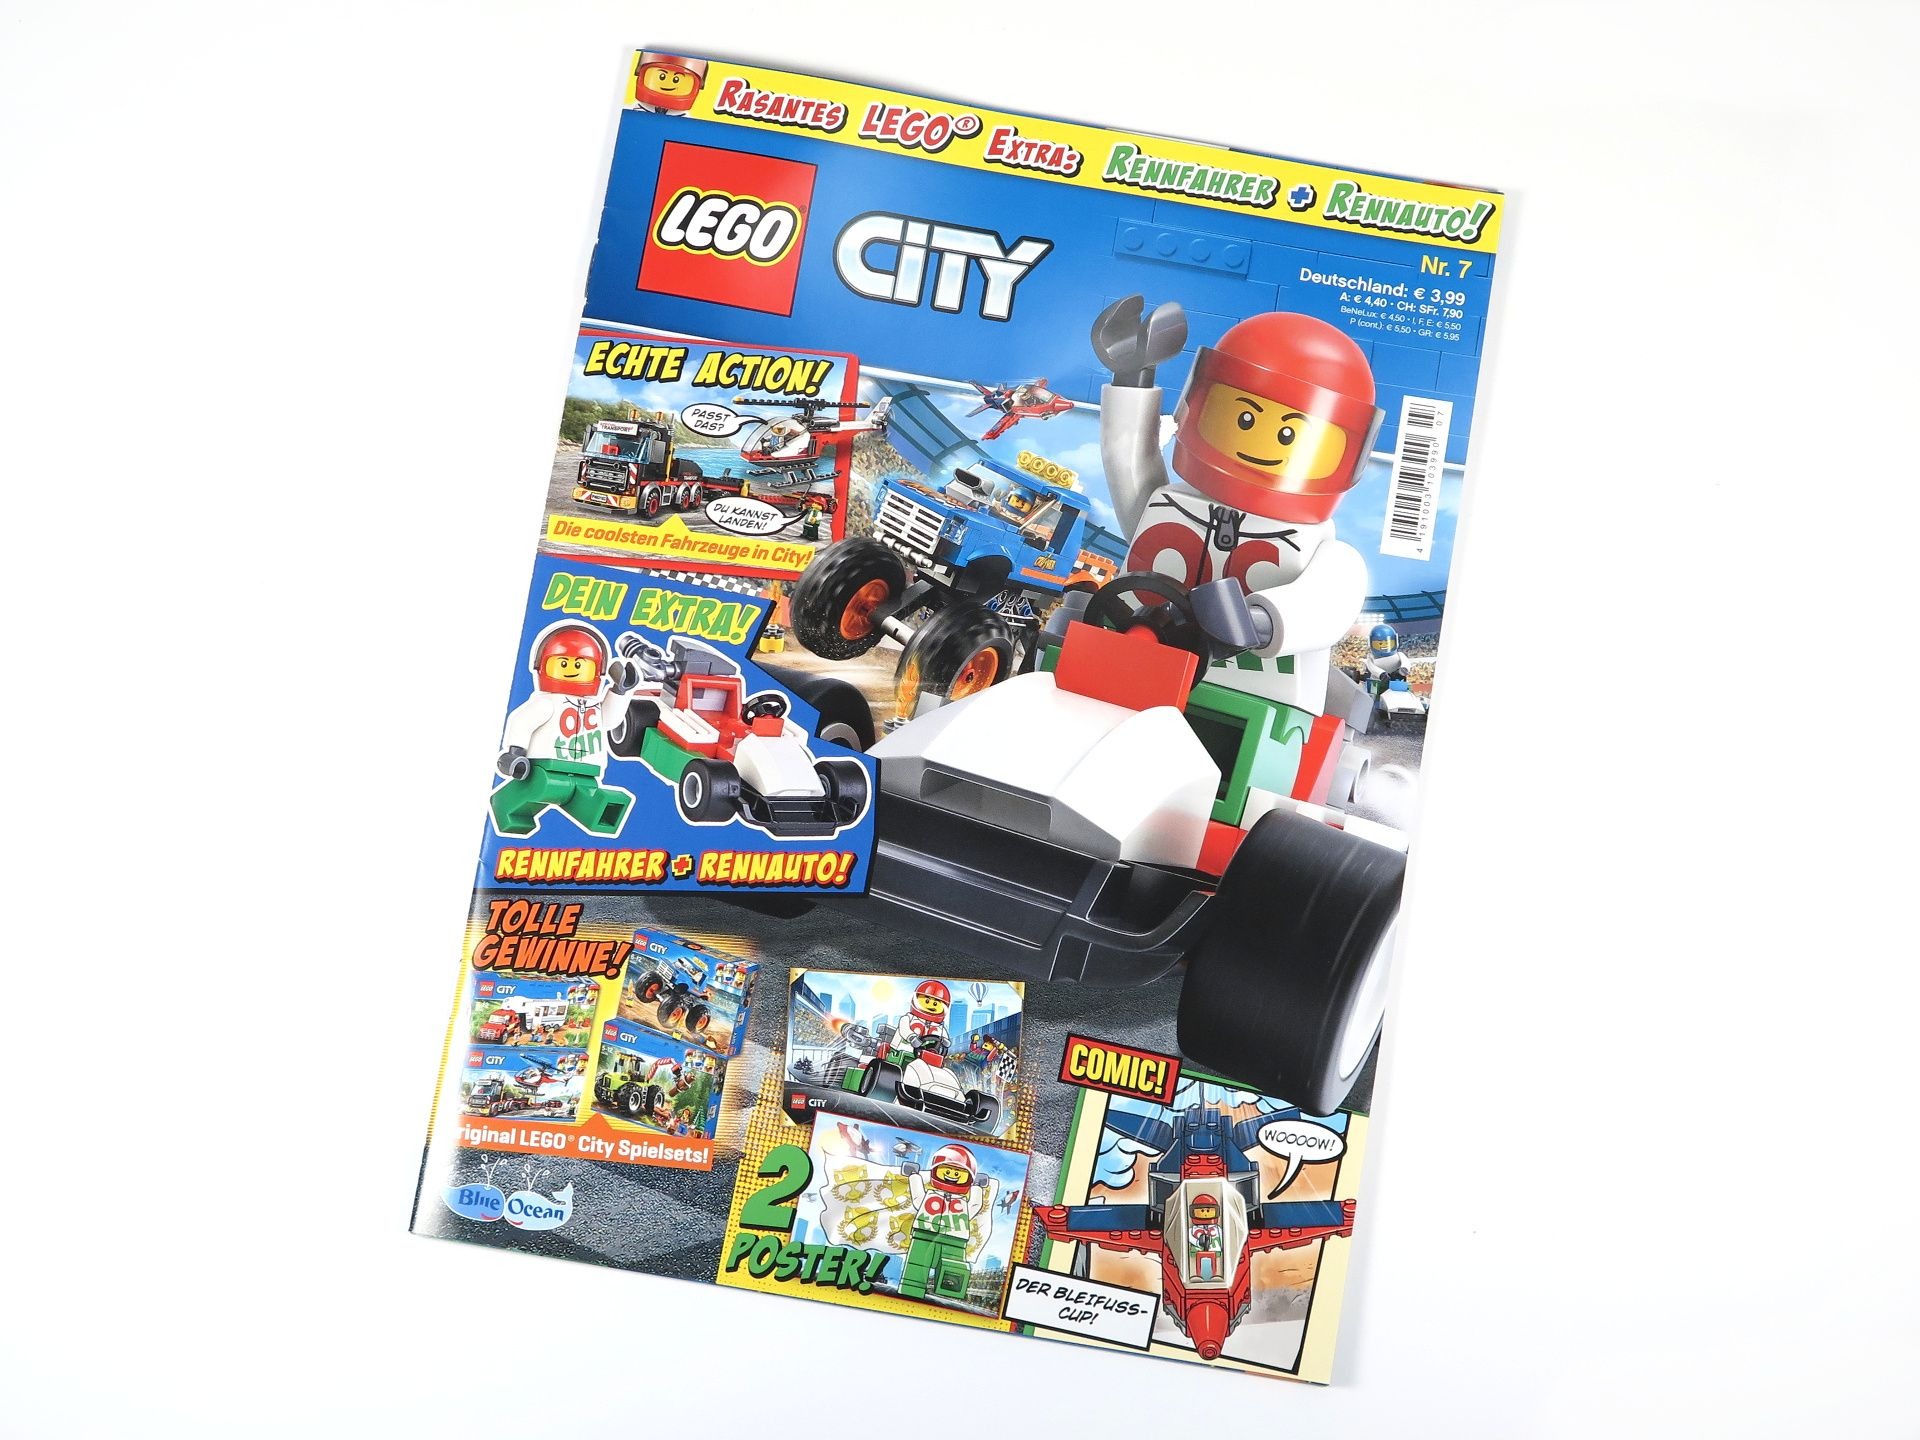 LEGO® City Magazin Nr. 7 - Cover ohne Polybag | 2018 Brickzeit